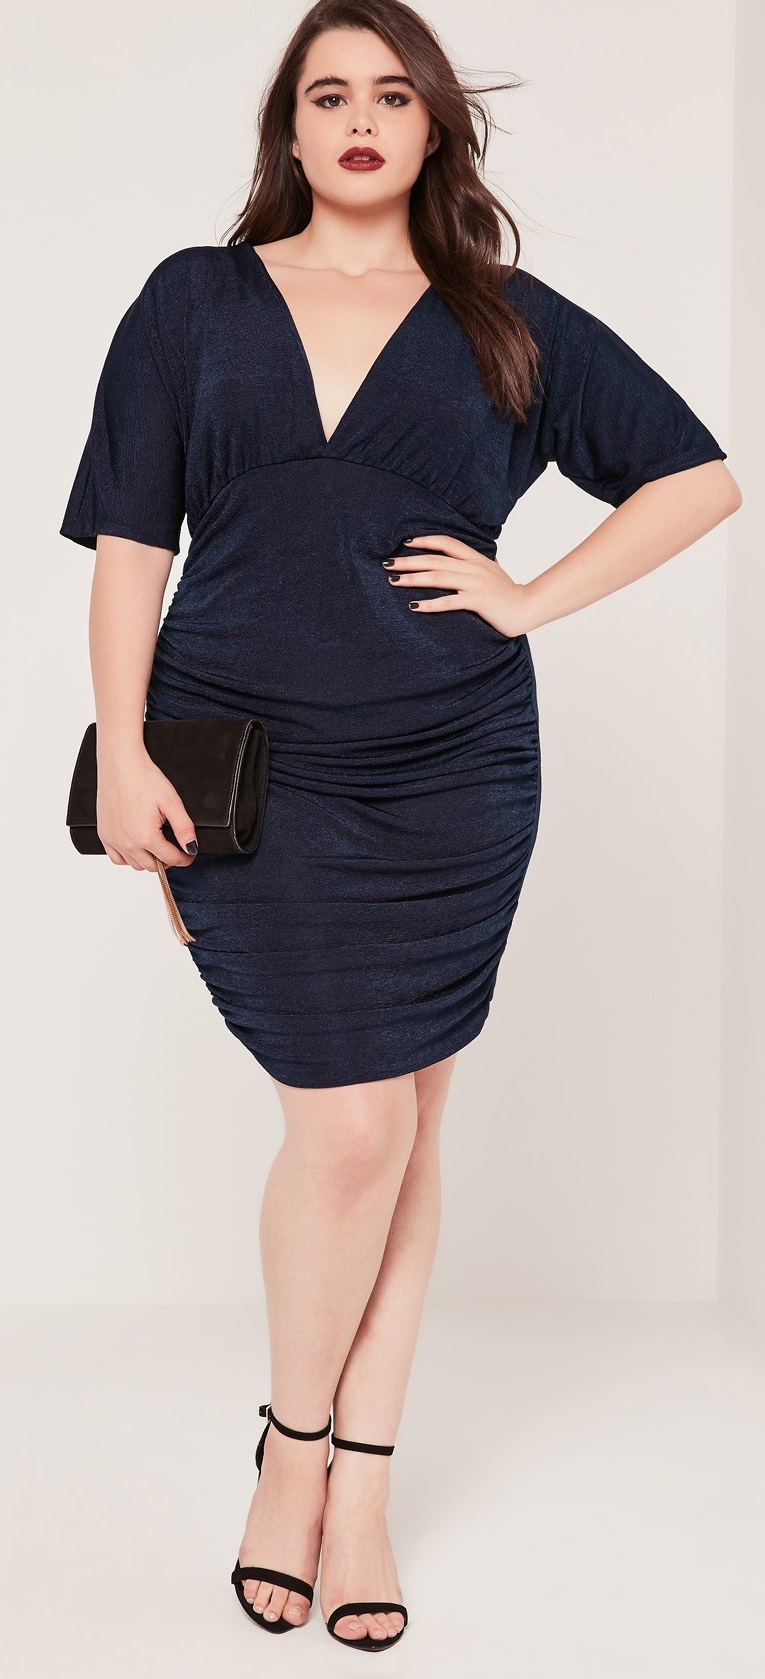 Party plus size dresses for women